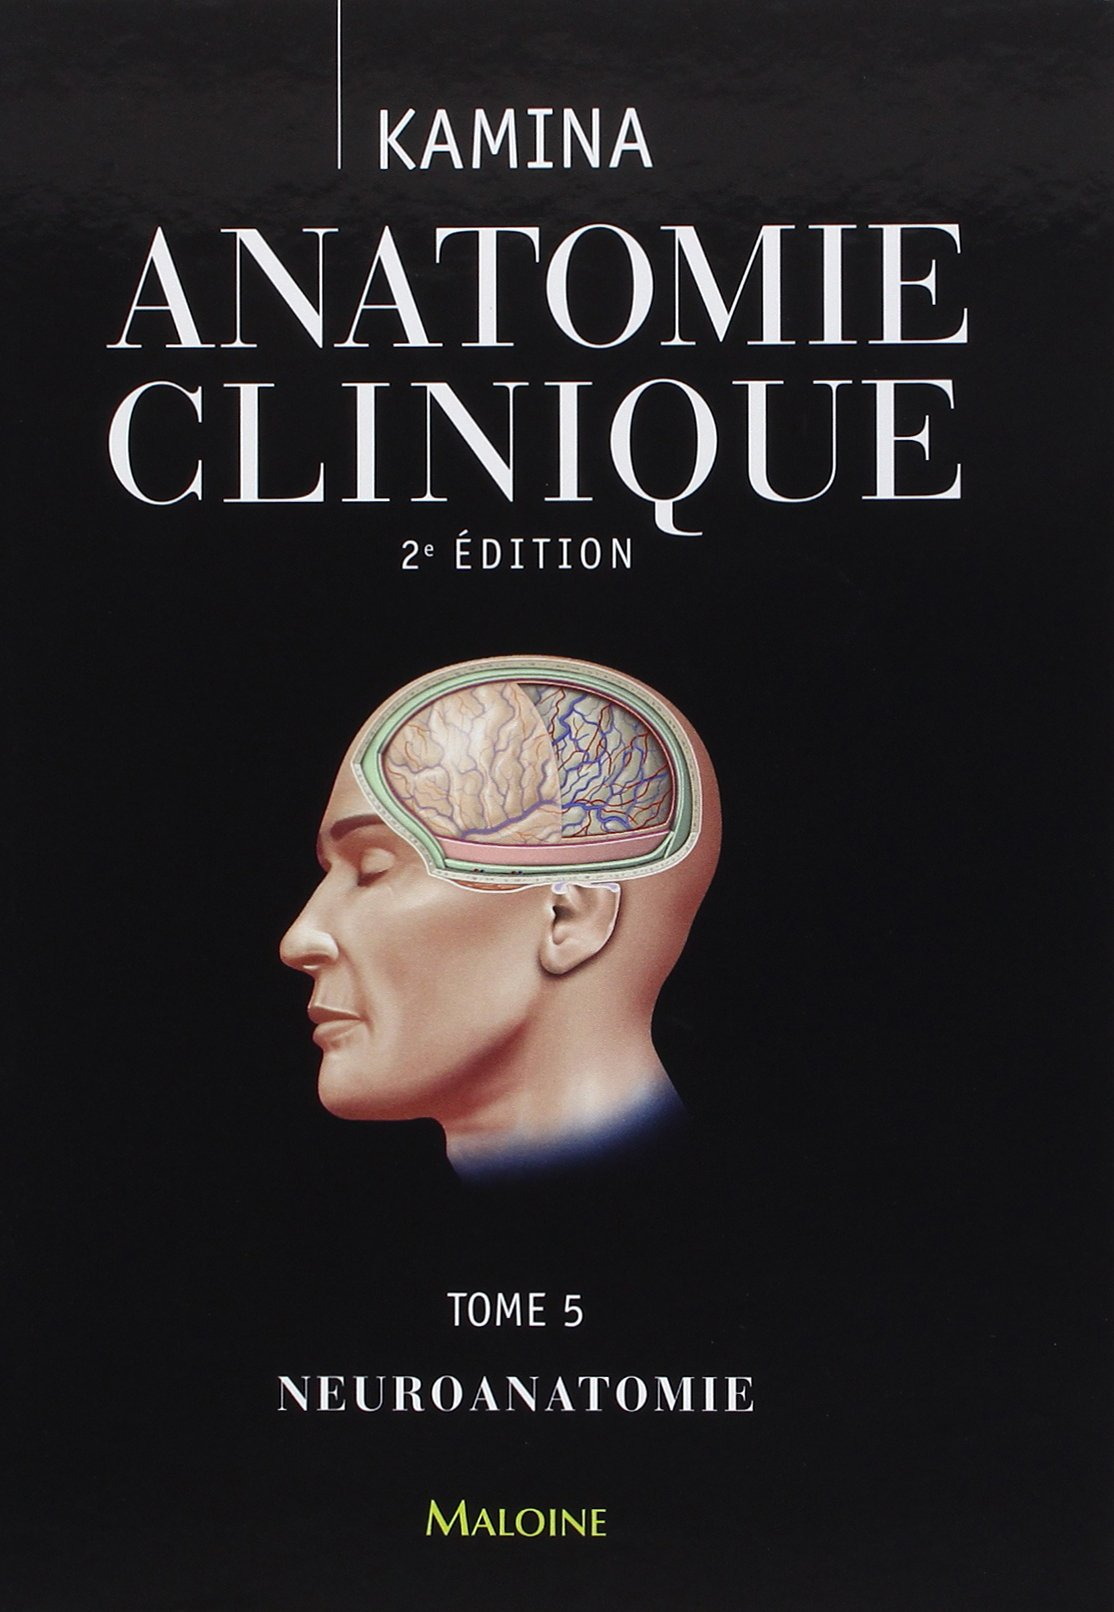 anatomie clinique kamina